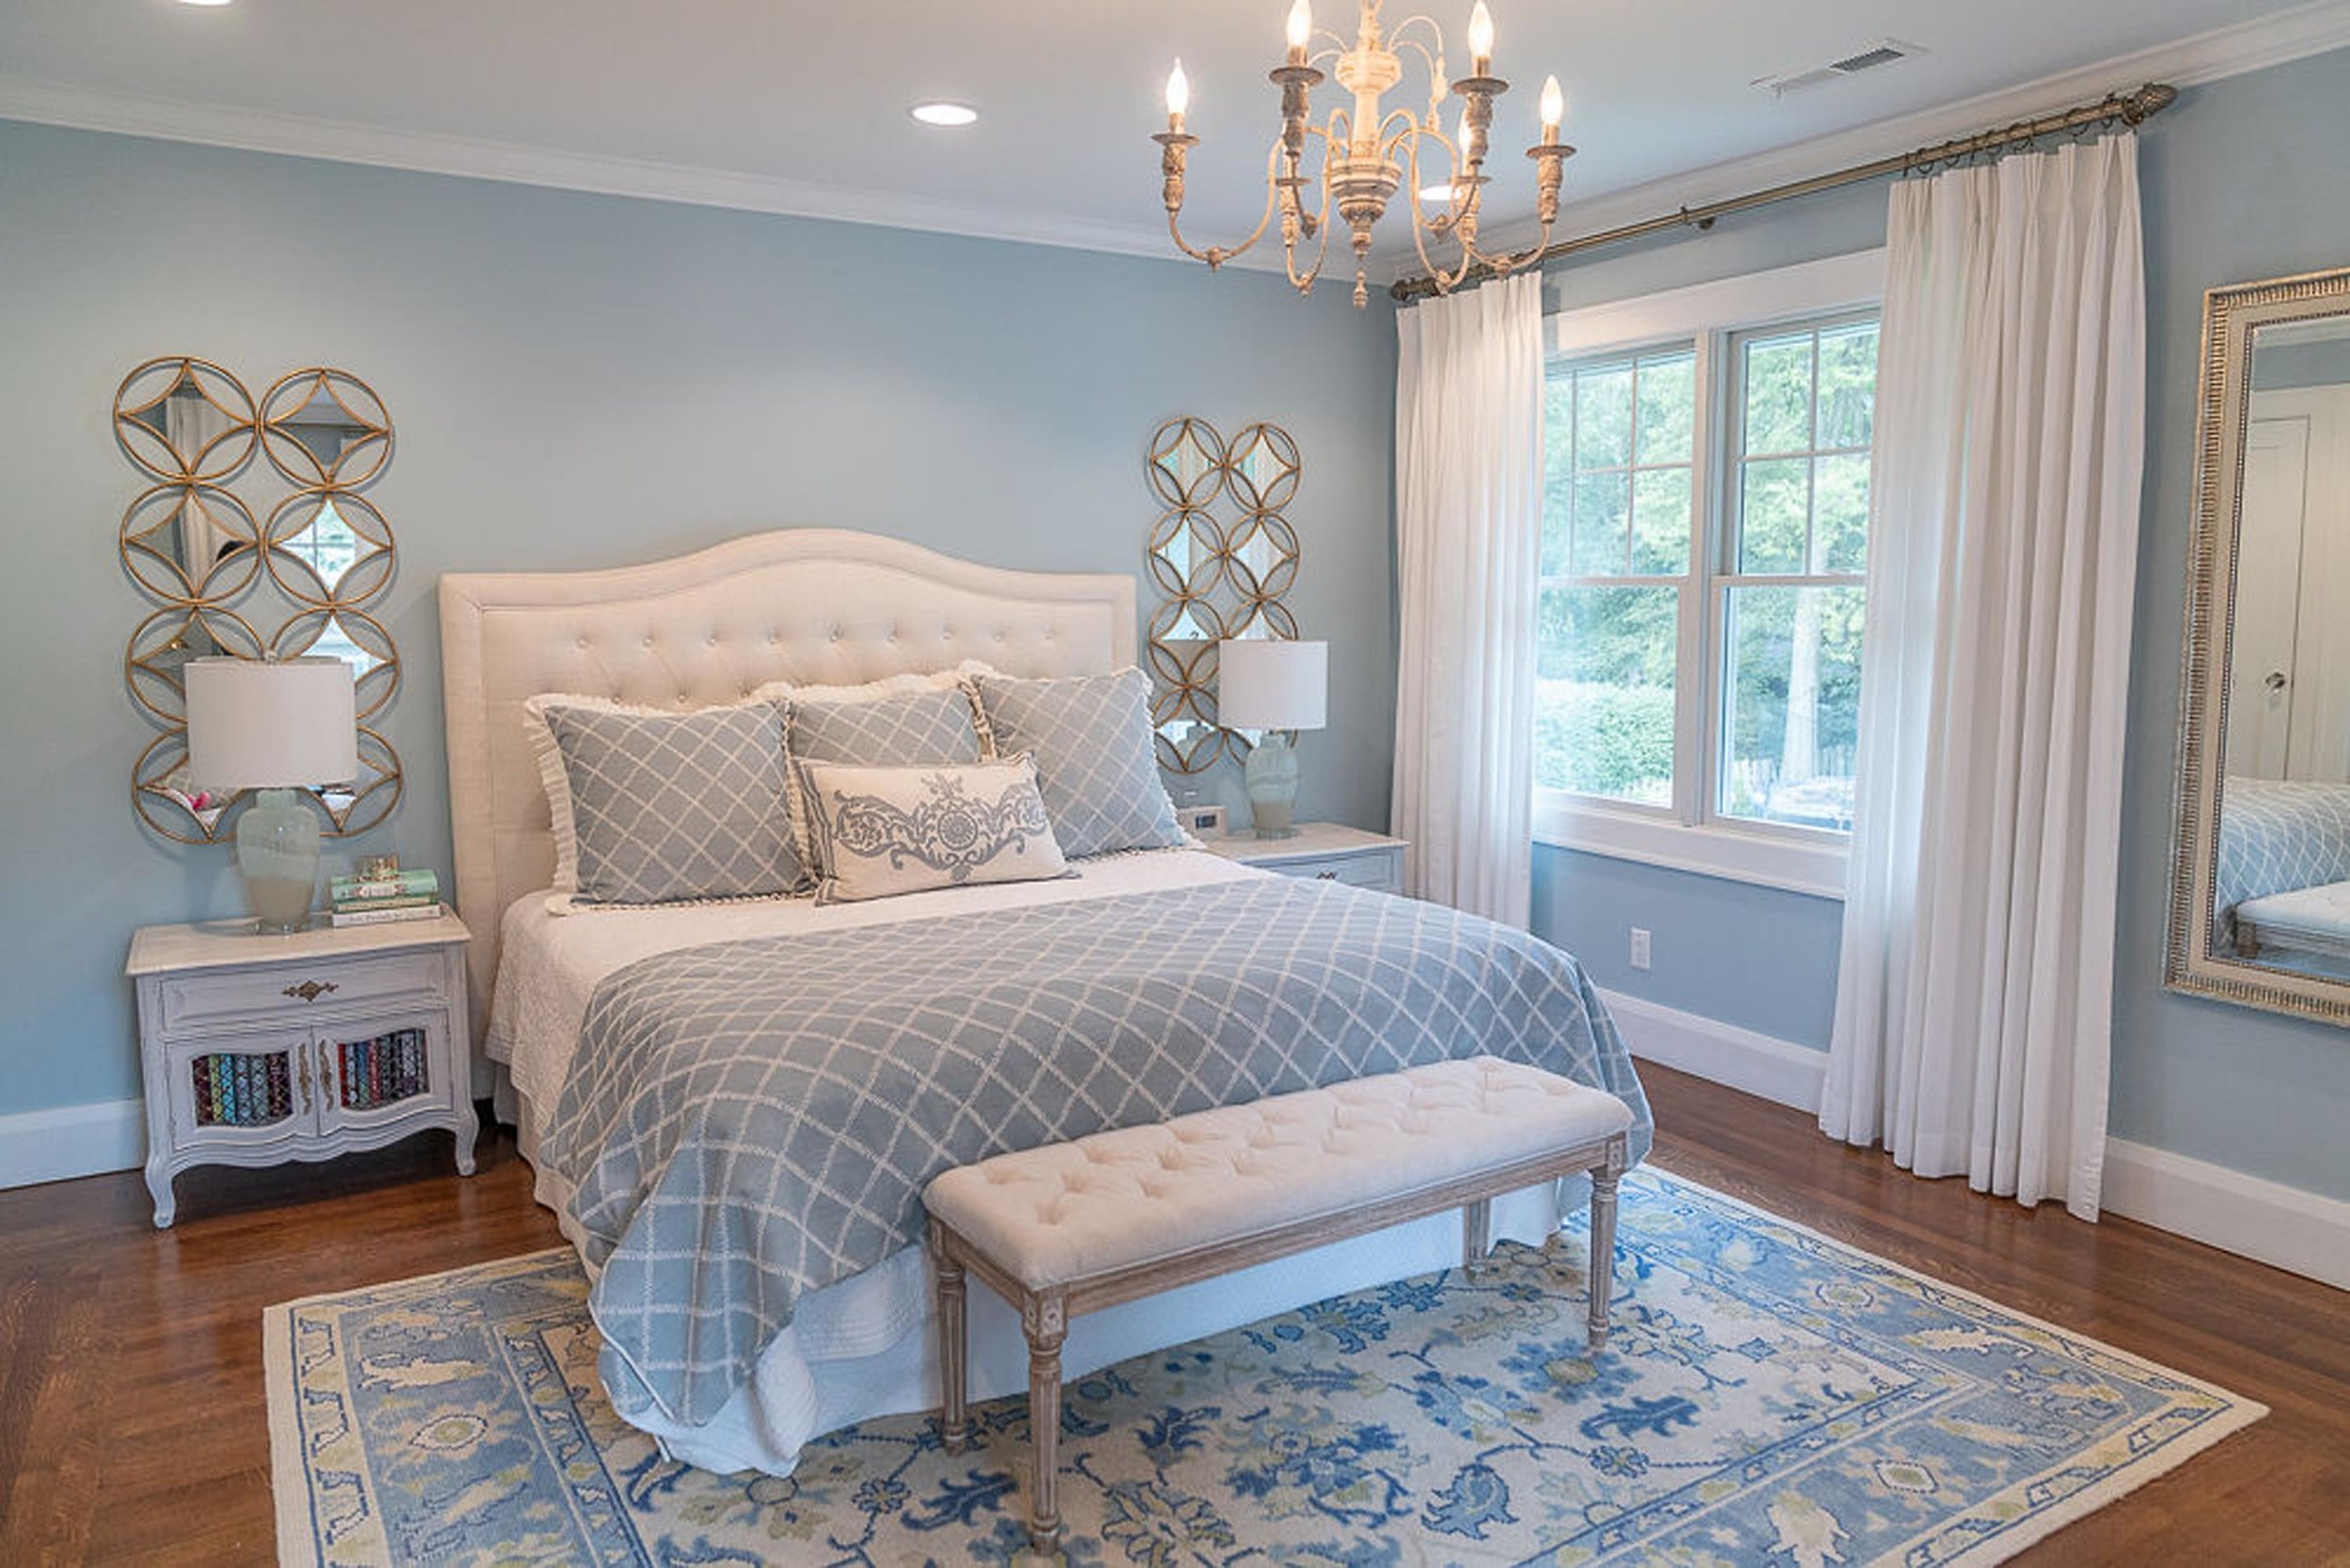 Blue bedroom with large bed, chandelier and table